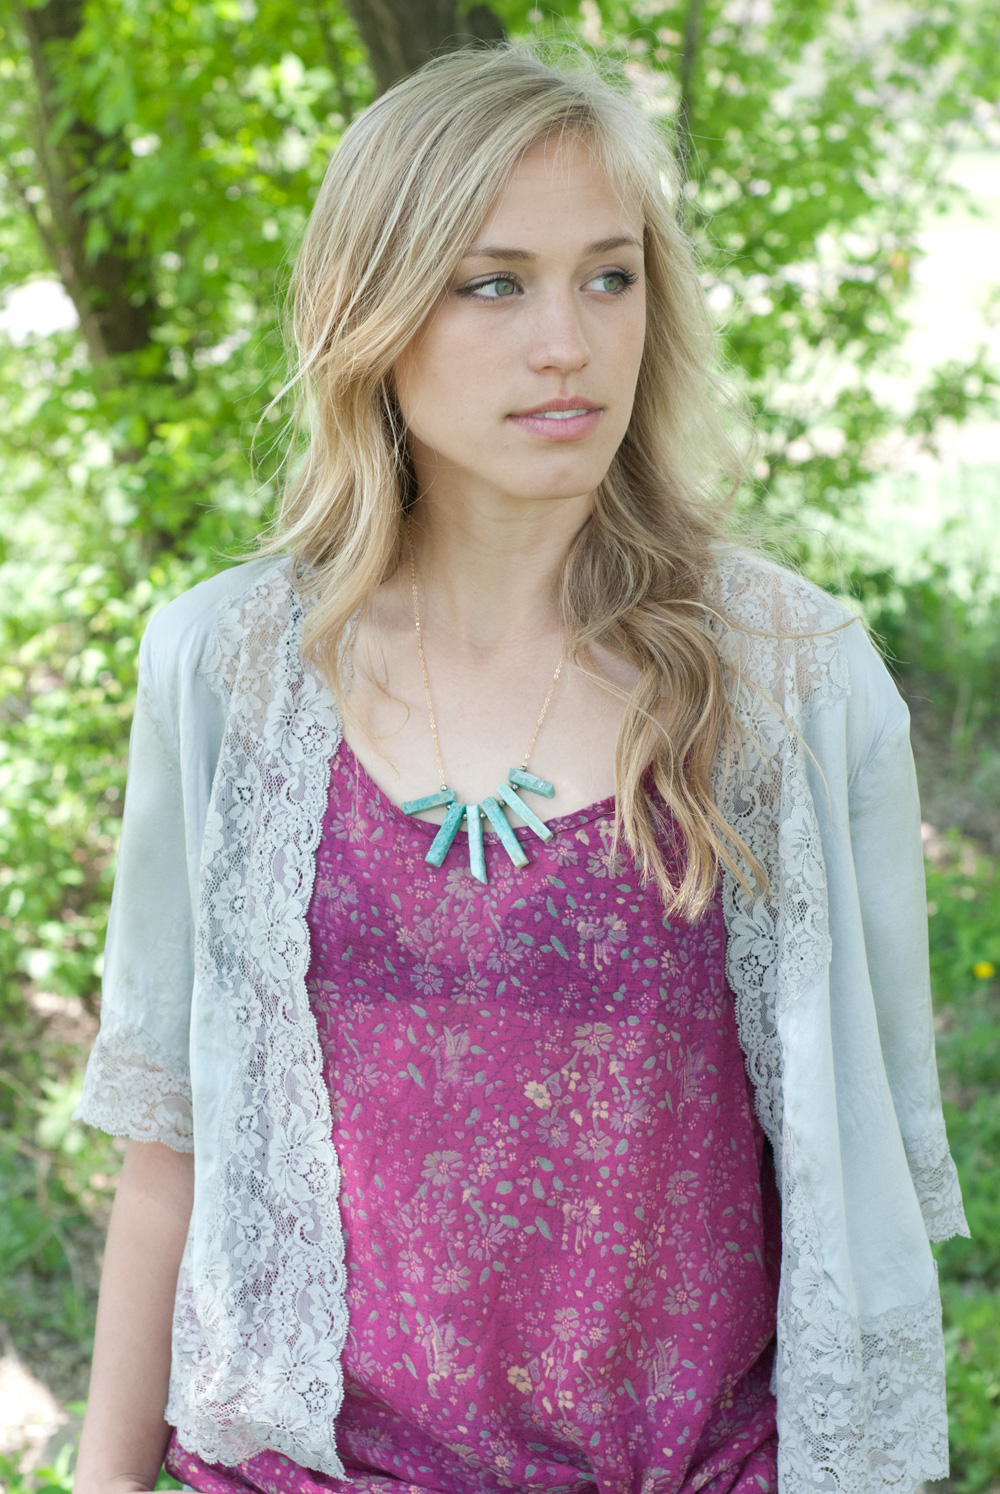 Allie-Pink-Shirt-Grey-Lace-Top2.jpg